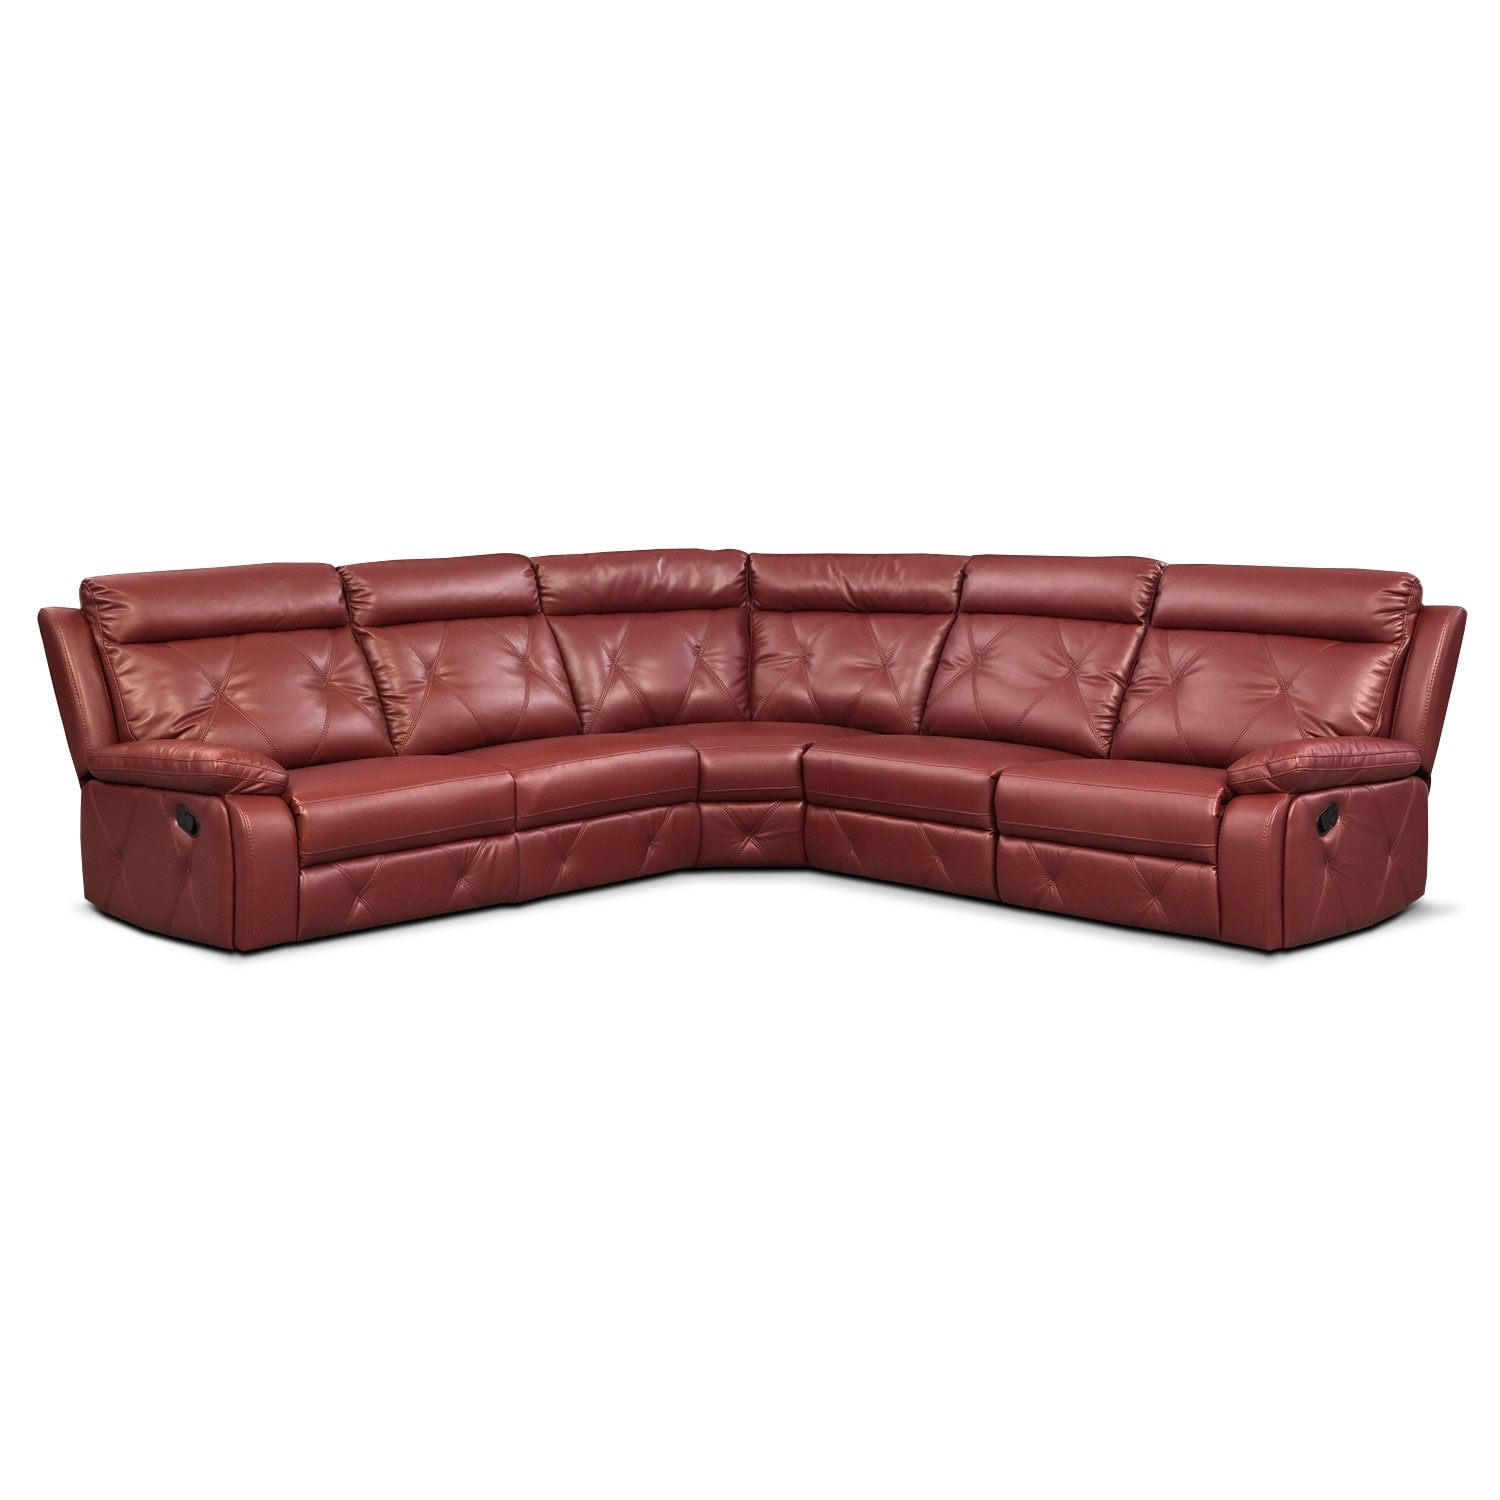 American Signature Furniture Replacement Parts: Dante Red 5 Pc. Reclining Sectional W/ 2 Reclining Seats